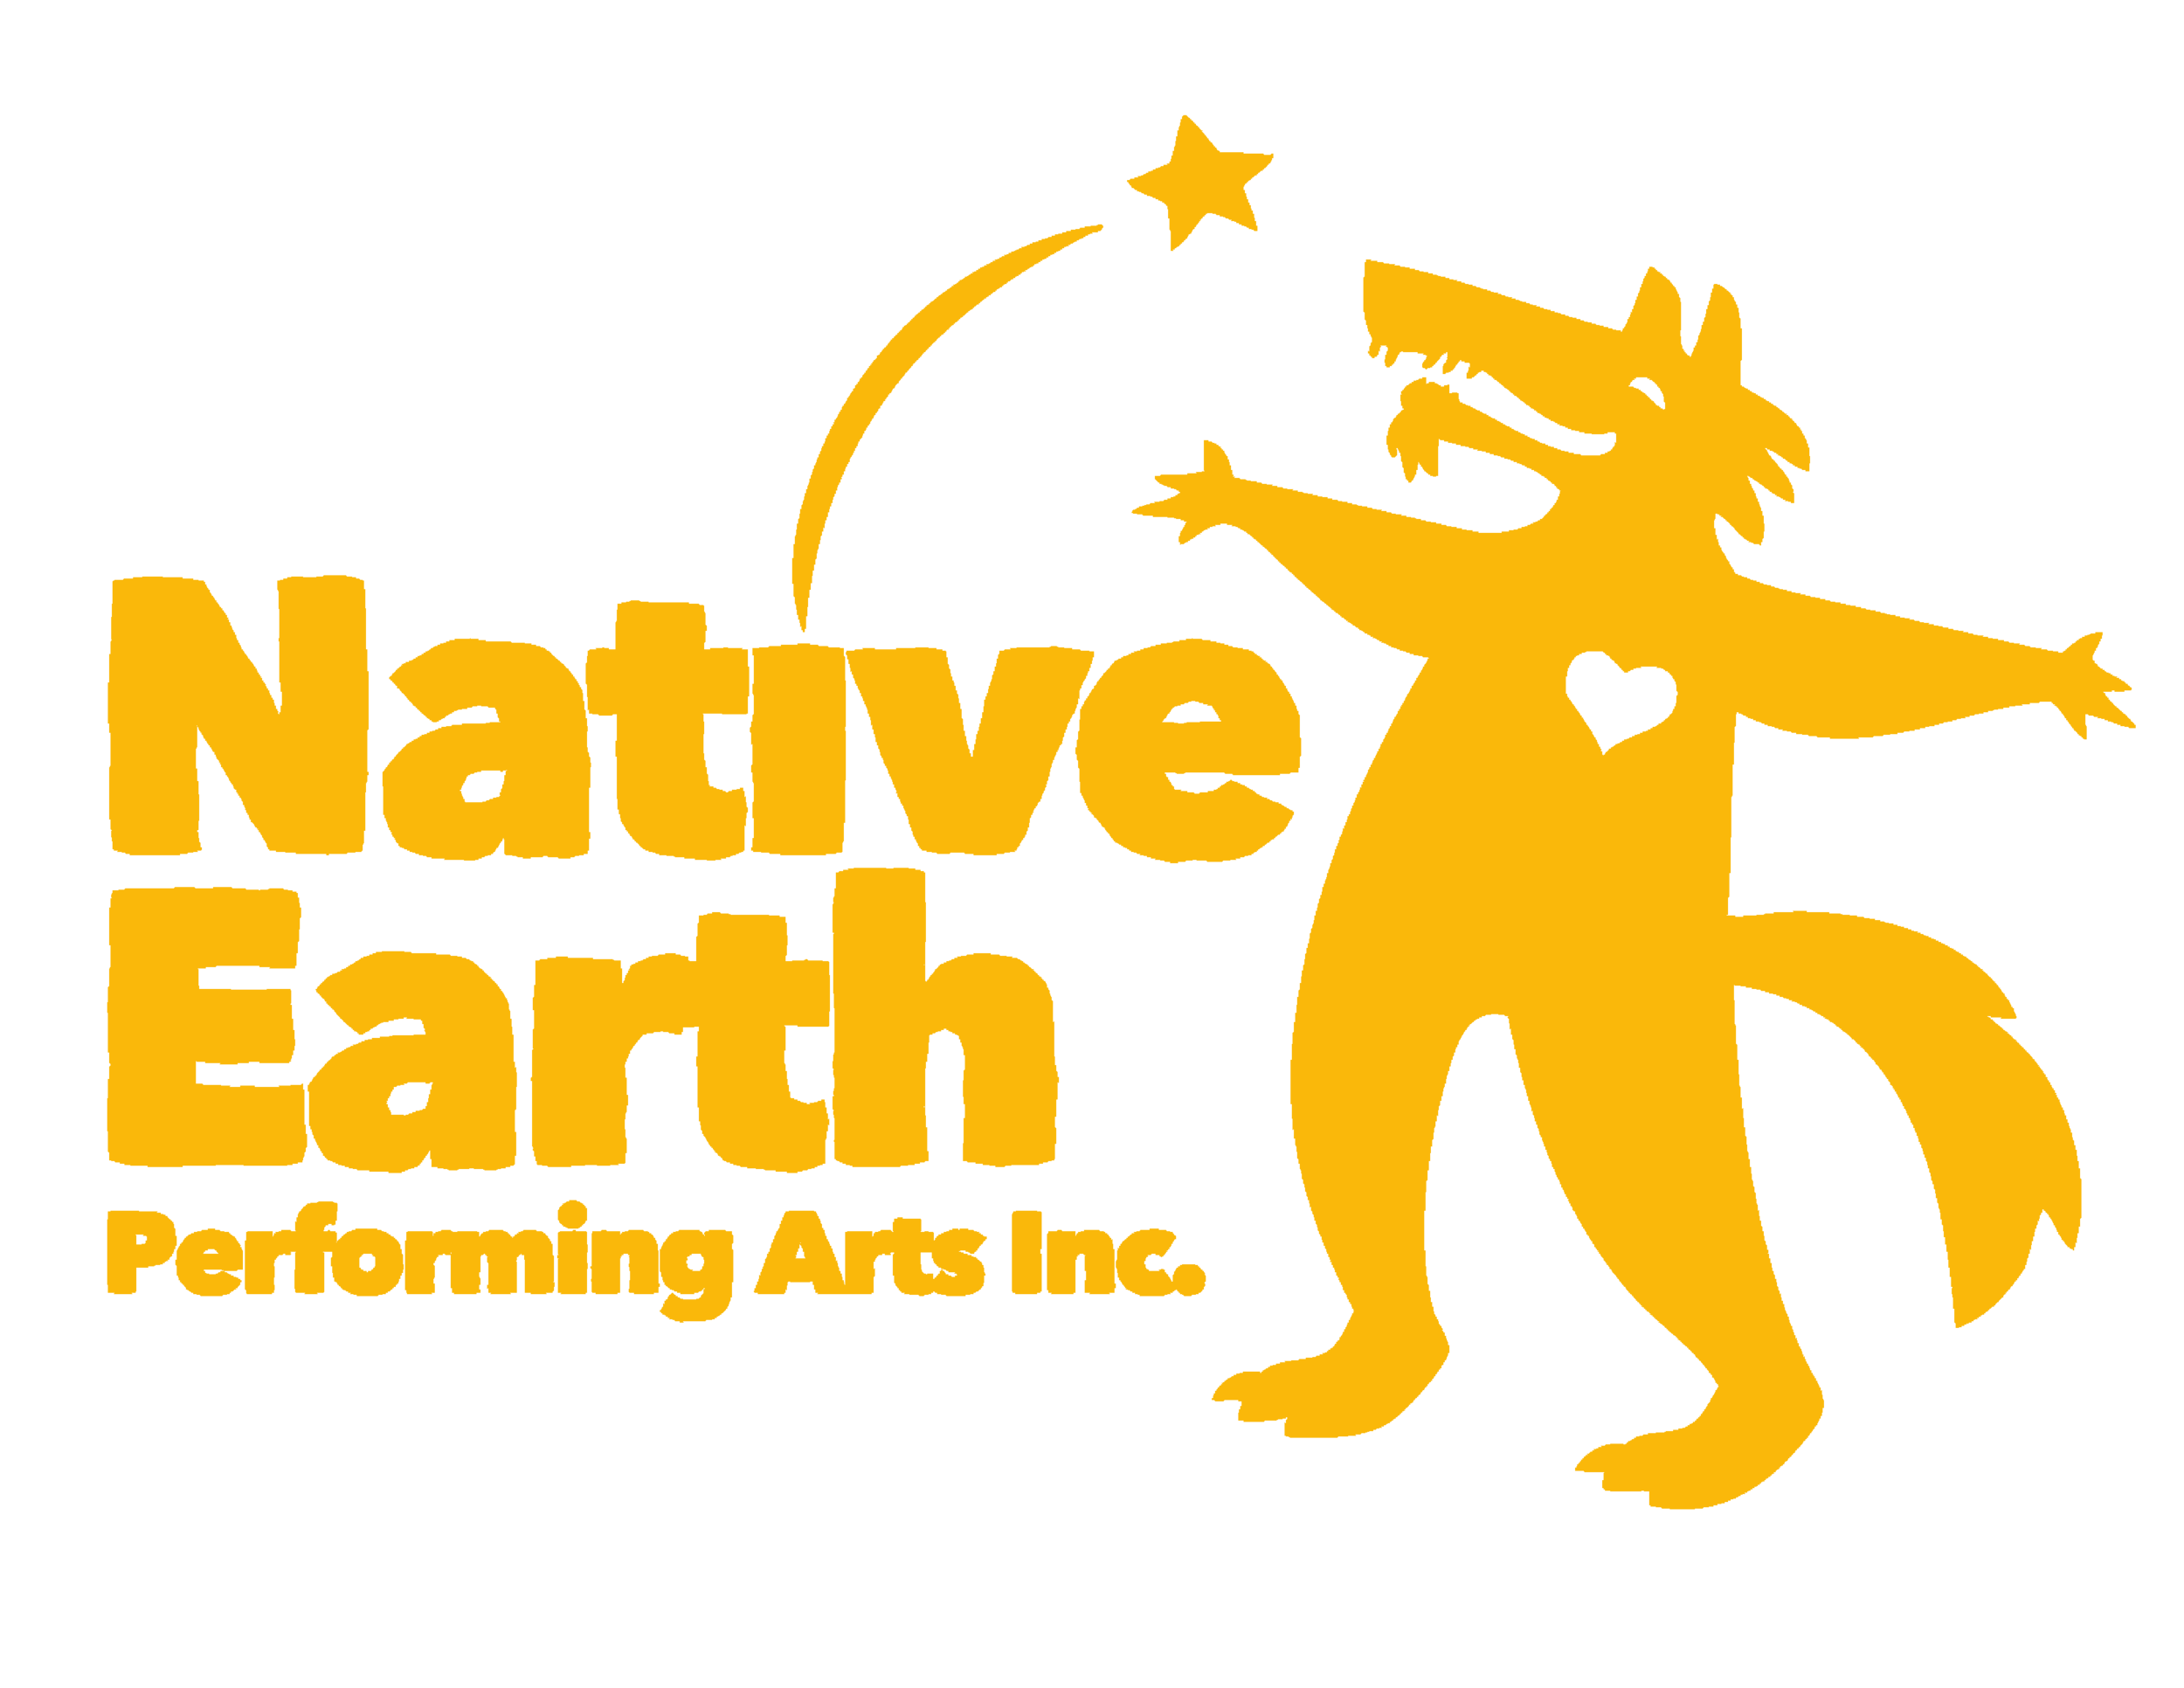 native-earth-yellow-gold-logo_transparent-BIGx.png